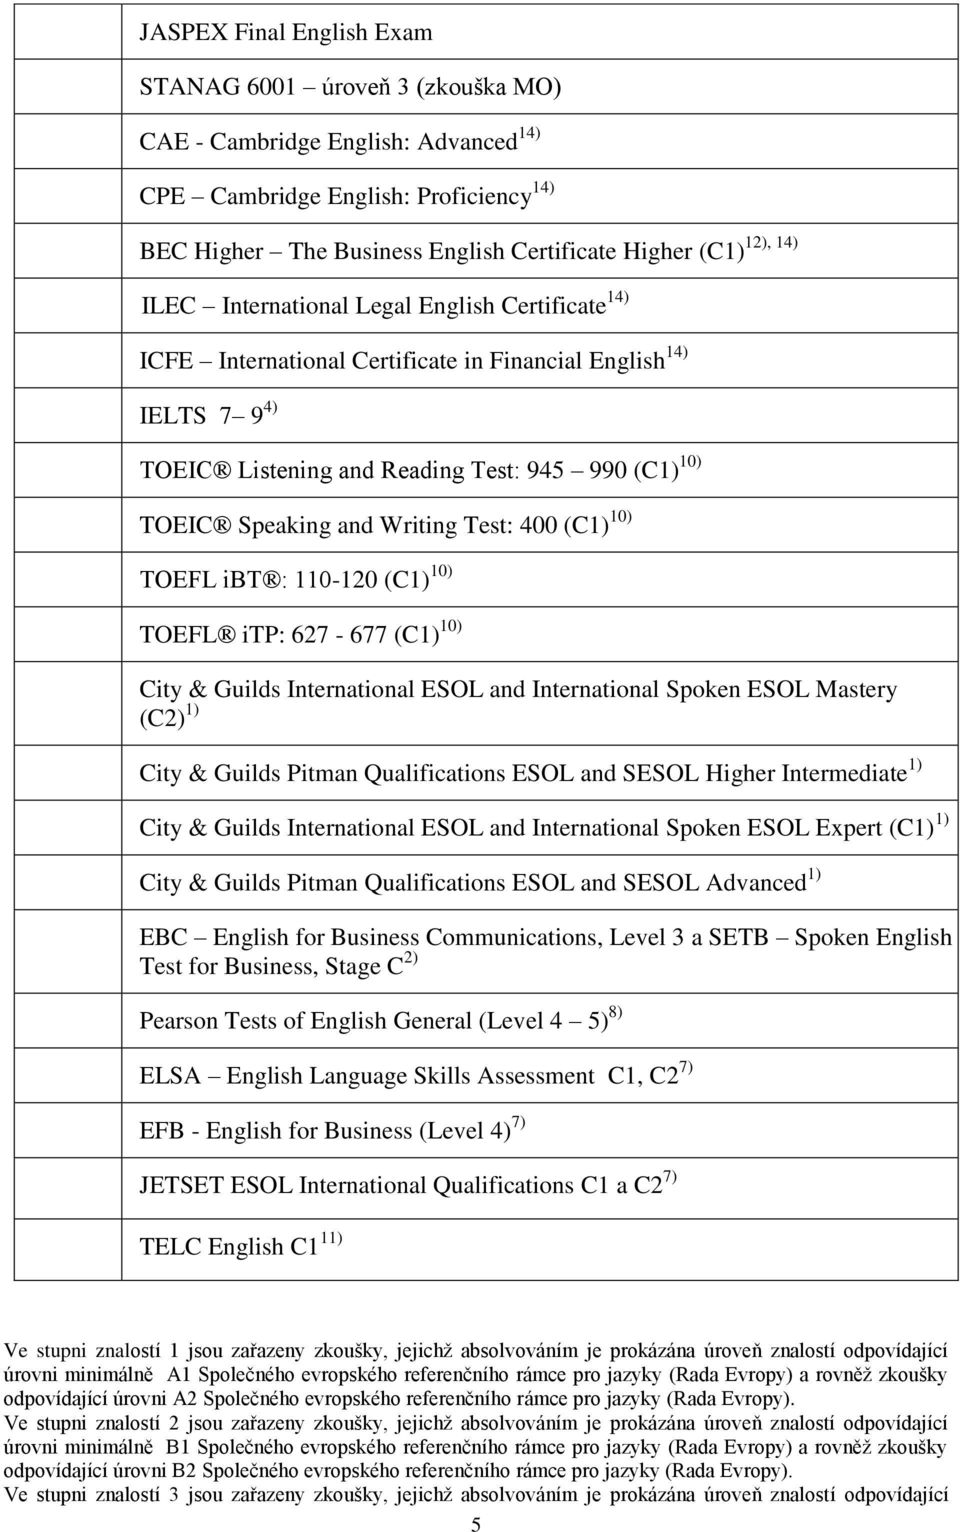 Writing Test: 400 (C1) 10) TOEFL ibt : 110-120 (C1) 10) TOEFL itp: 627-677 (C1) 10) City & Guilds International ESOL and International Spoken ESOL Mastery (C2) 1) City & Guilds Pitman Qualifications